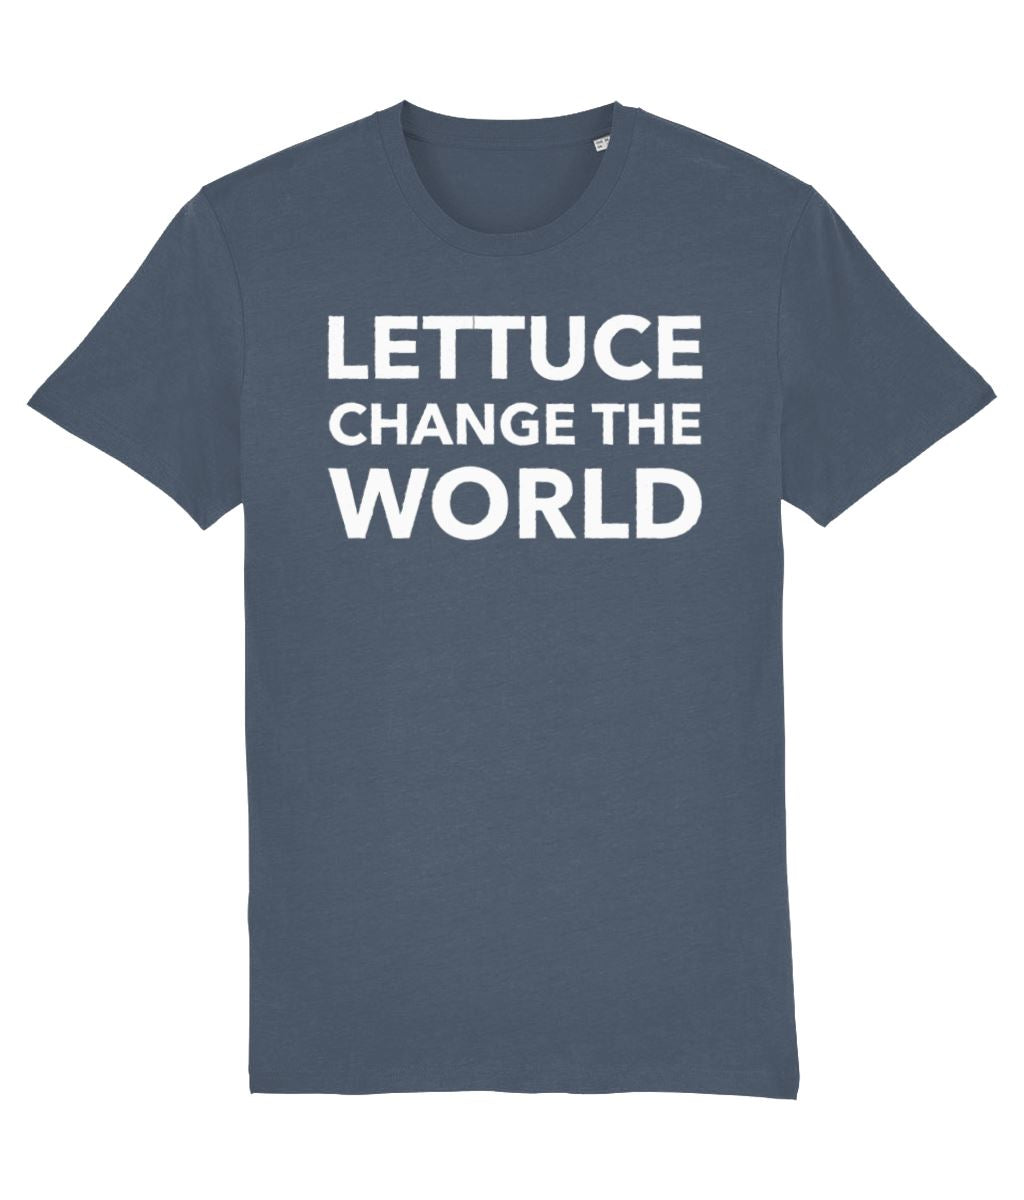 """Lettuce Change the World"" Vegan T-Shirt - Black (Unisex) Clothing Vegan Original Stargazer X-Small"